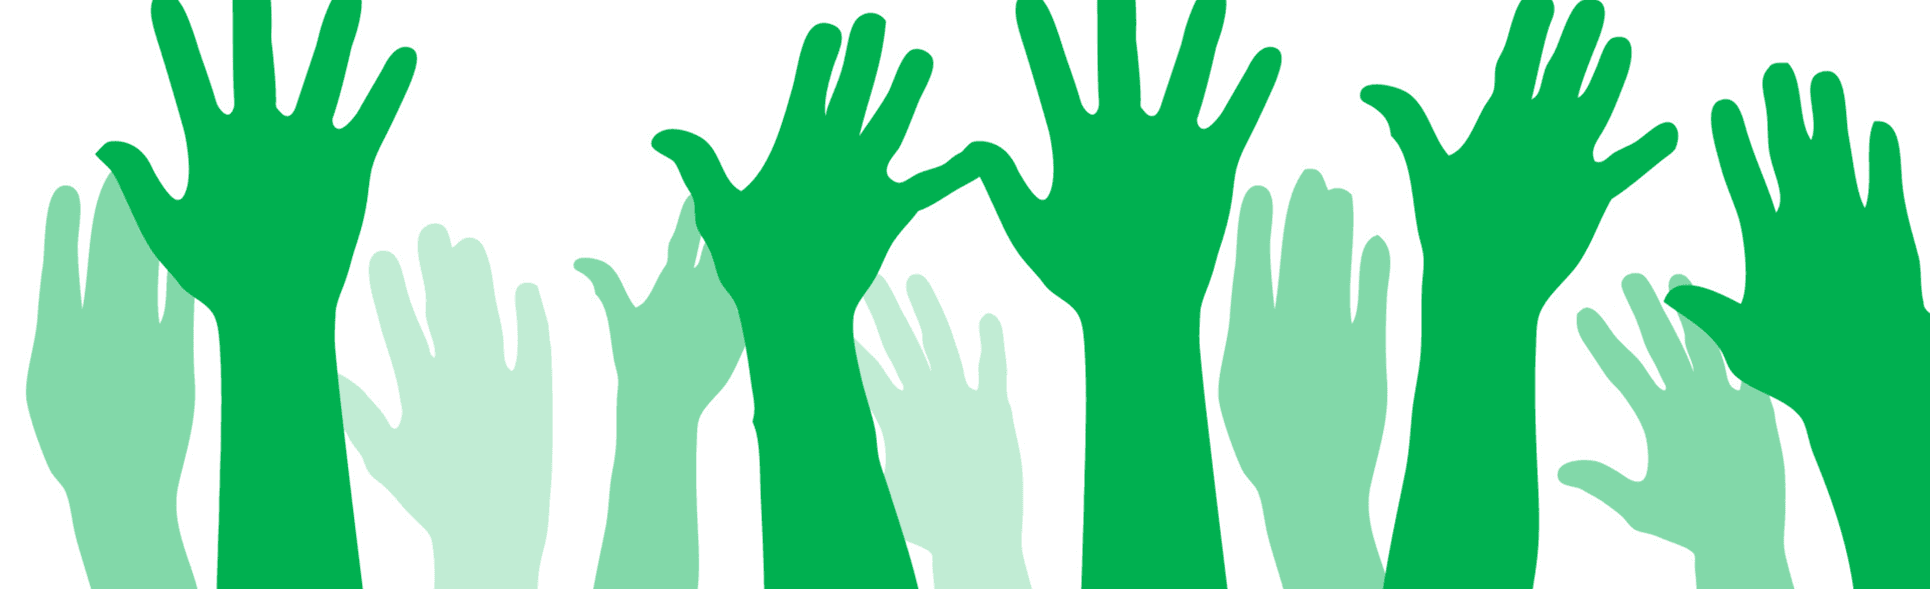 Image of the silhouettes of green Hands